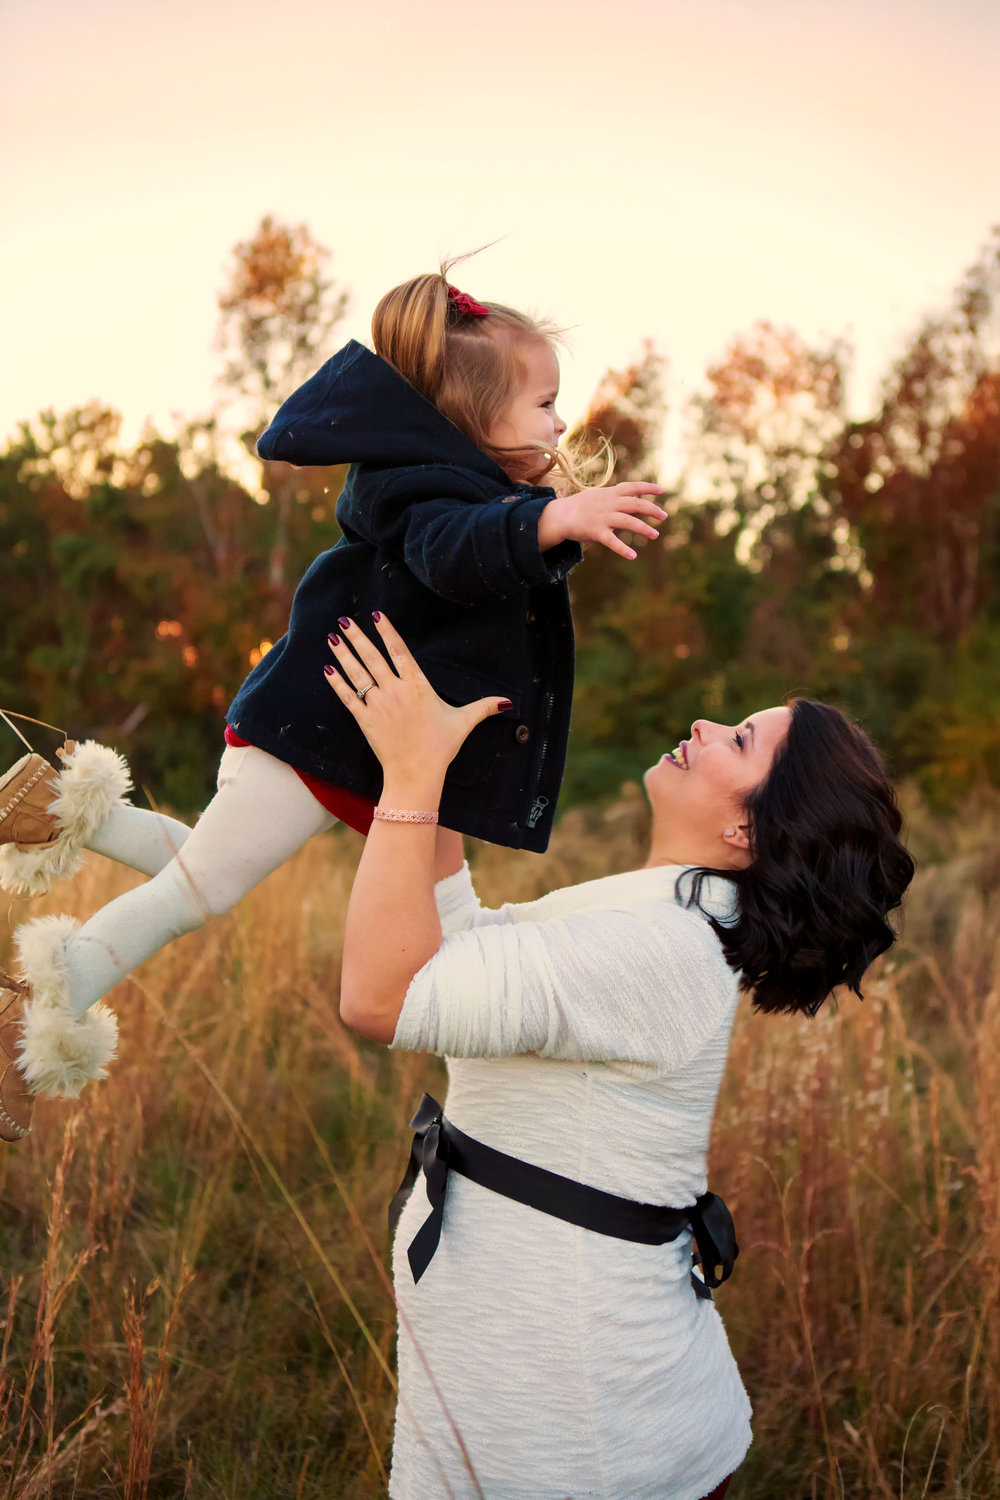 NC_Maternity_Photographer_Tiffany_Abruzzo_Photography_19.jpg